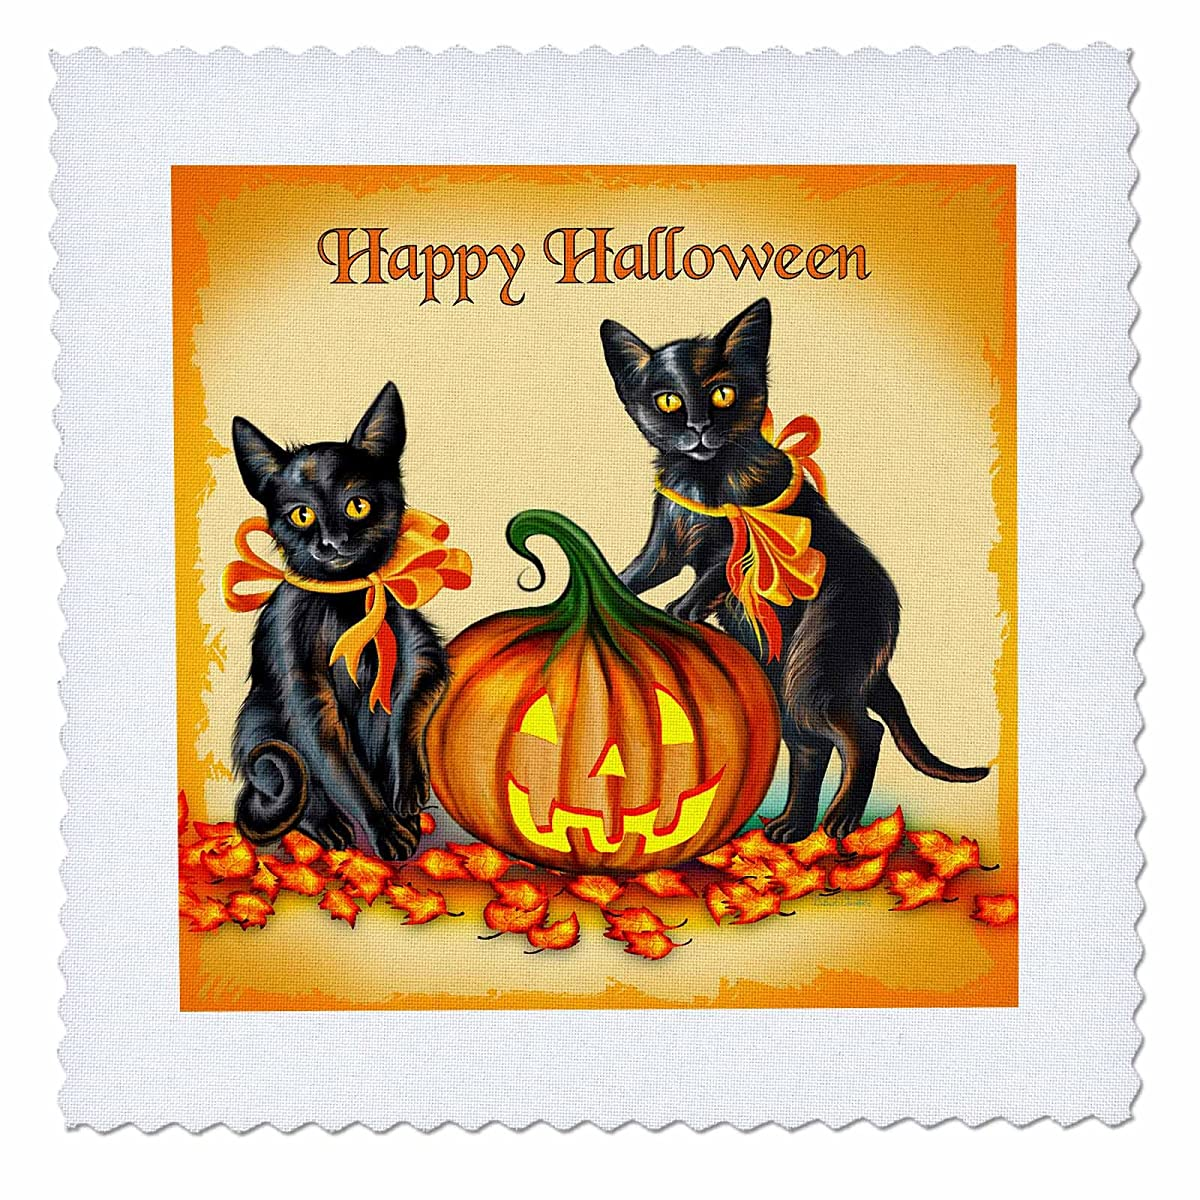 3dRose qs_11651_1 This Design Features a Pair of Frisky Black Kittens and a Glowing Jackolantern on Halloween Quilt Square, 10 by 10-Inch